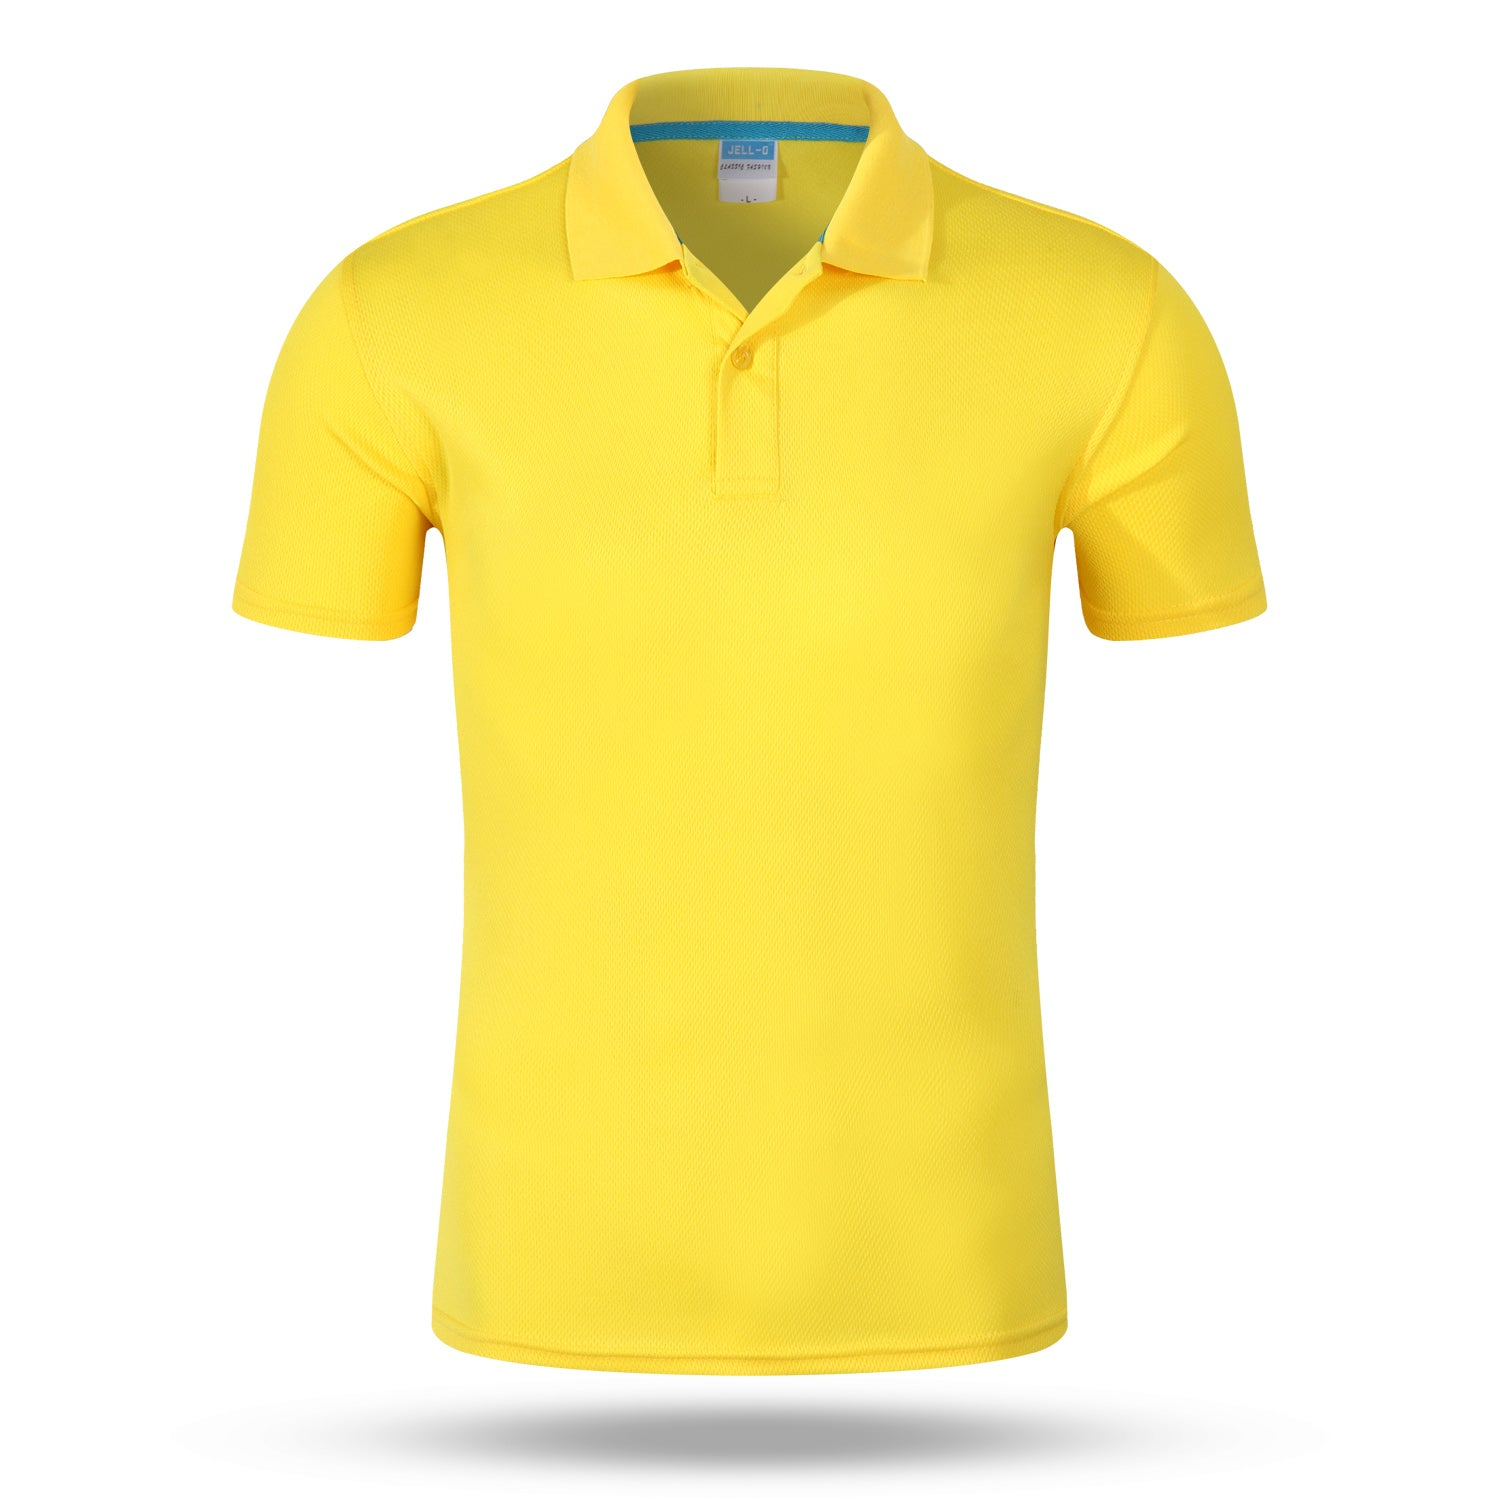 Top Men Polo Shirt Men S Business Casual Solid Polo Summer Style